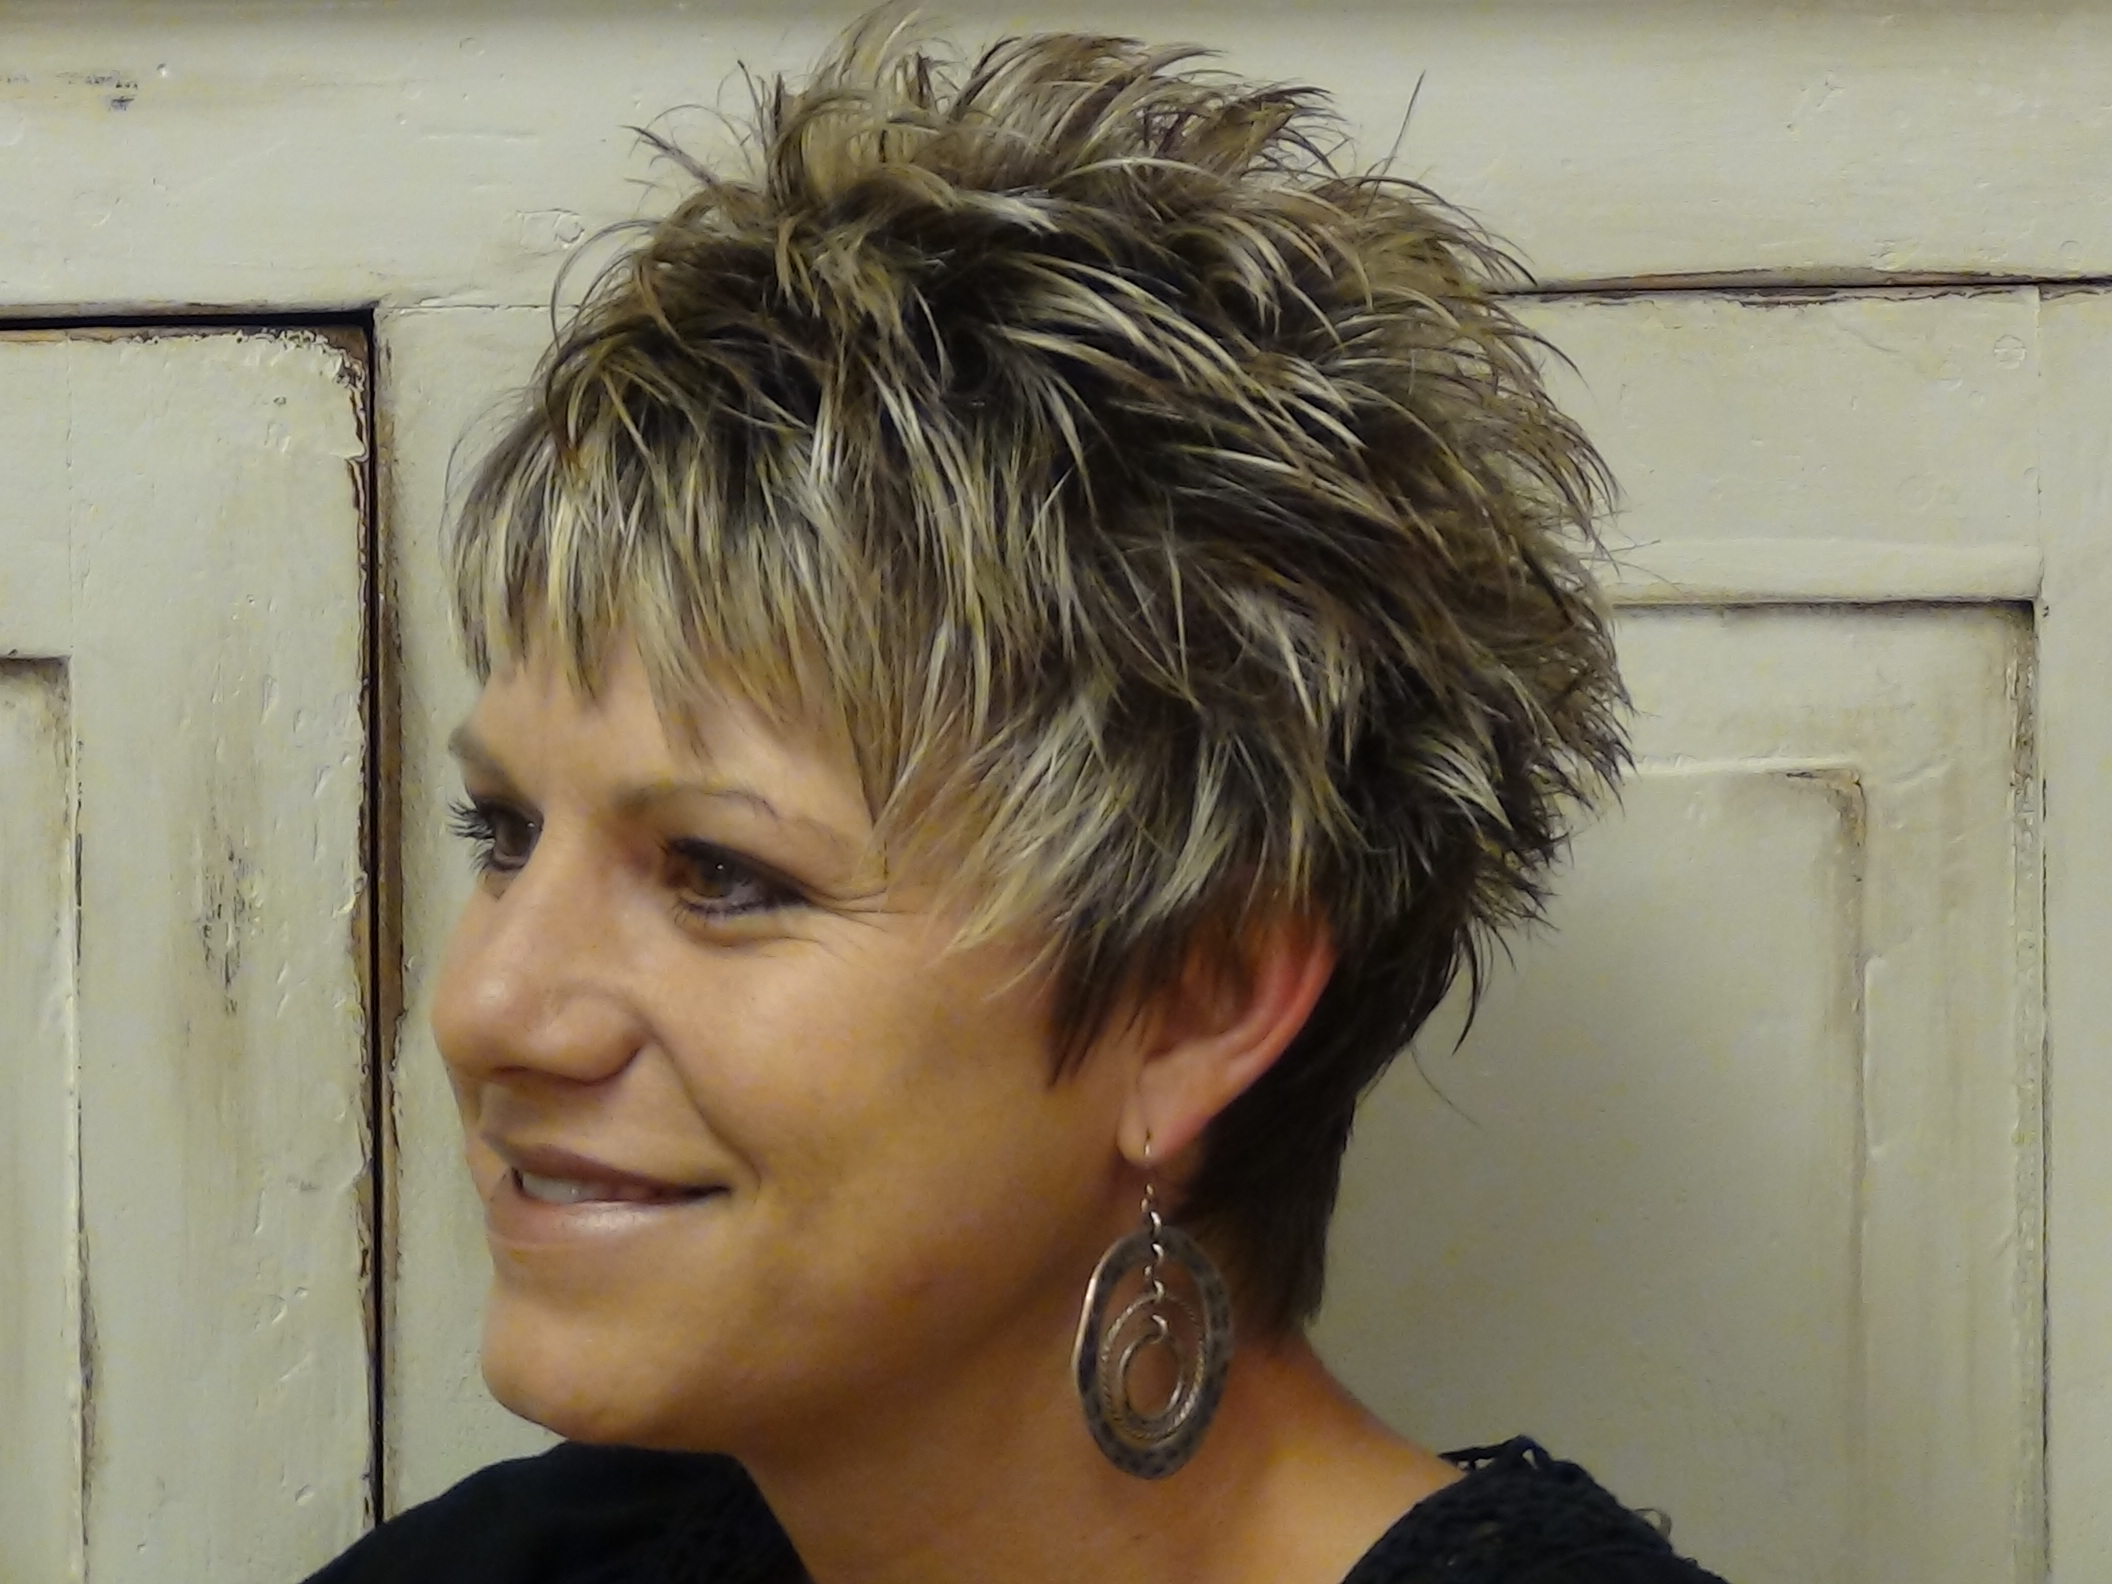 Hairstyles For Short Hair 60: Cute Hairstyles For Women Over 50